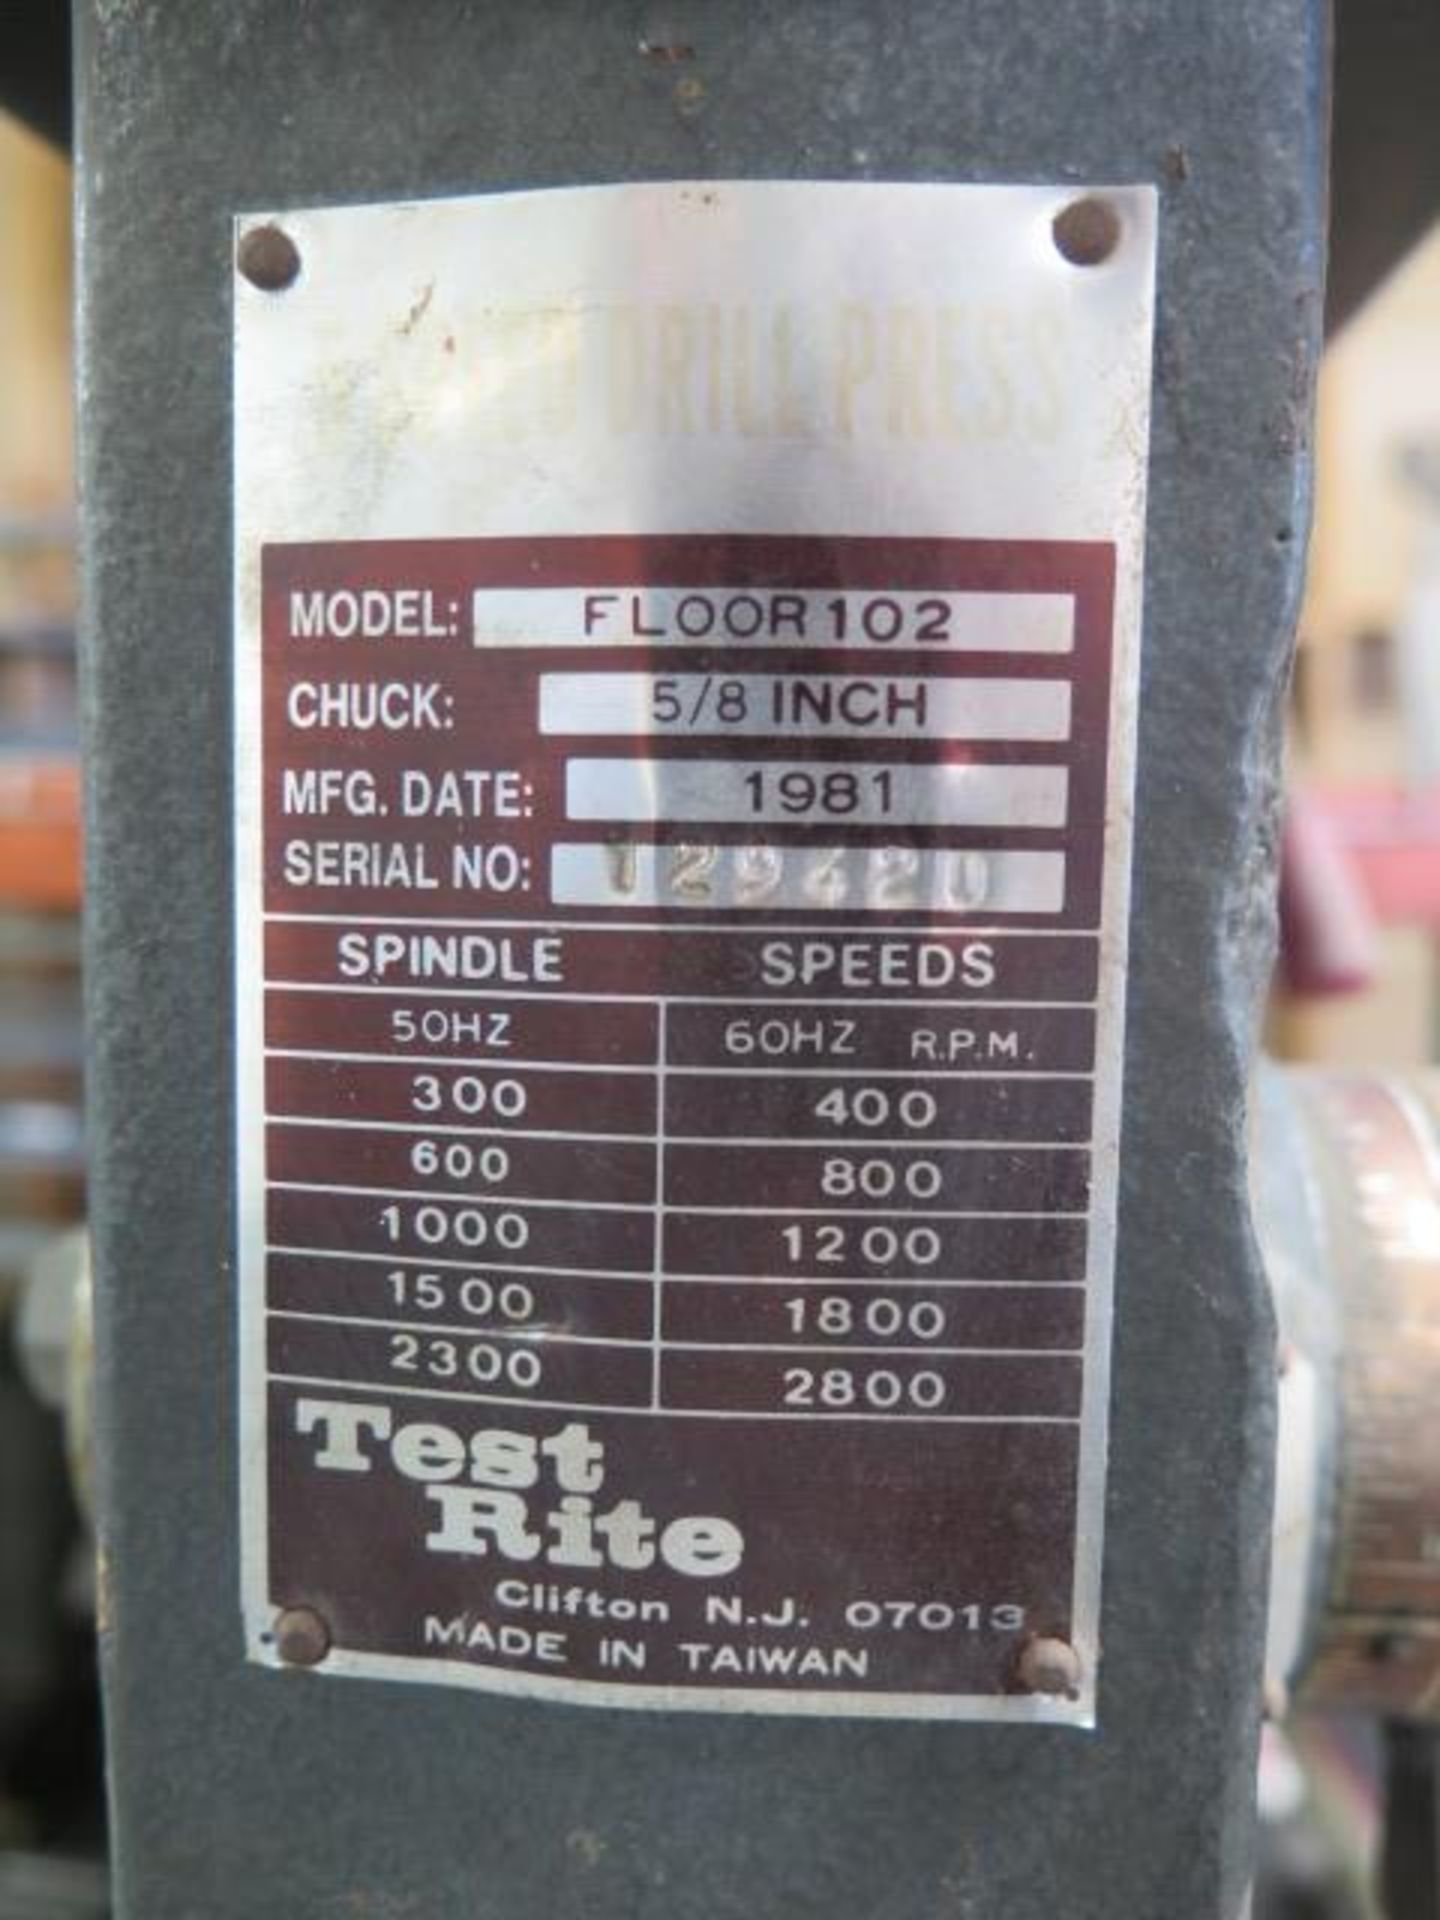 Test Rite Pedestal Drill Press (SOLD AS-IS - NO WARRANTY) - Image 5 of 6